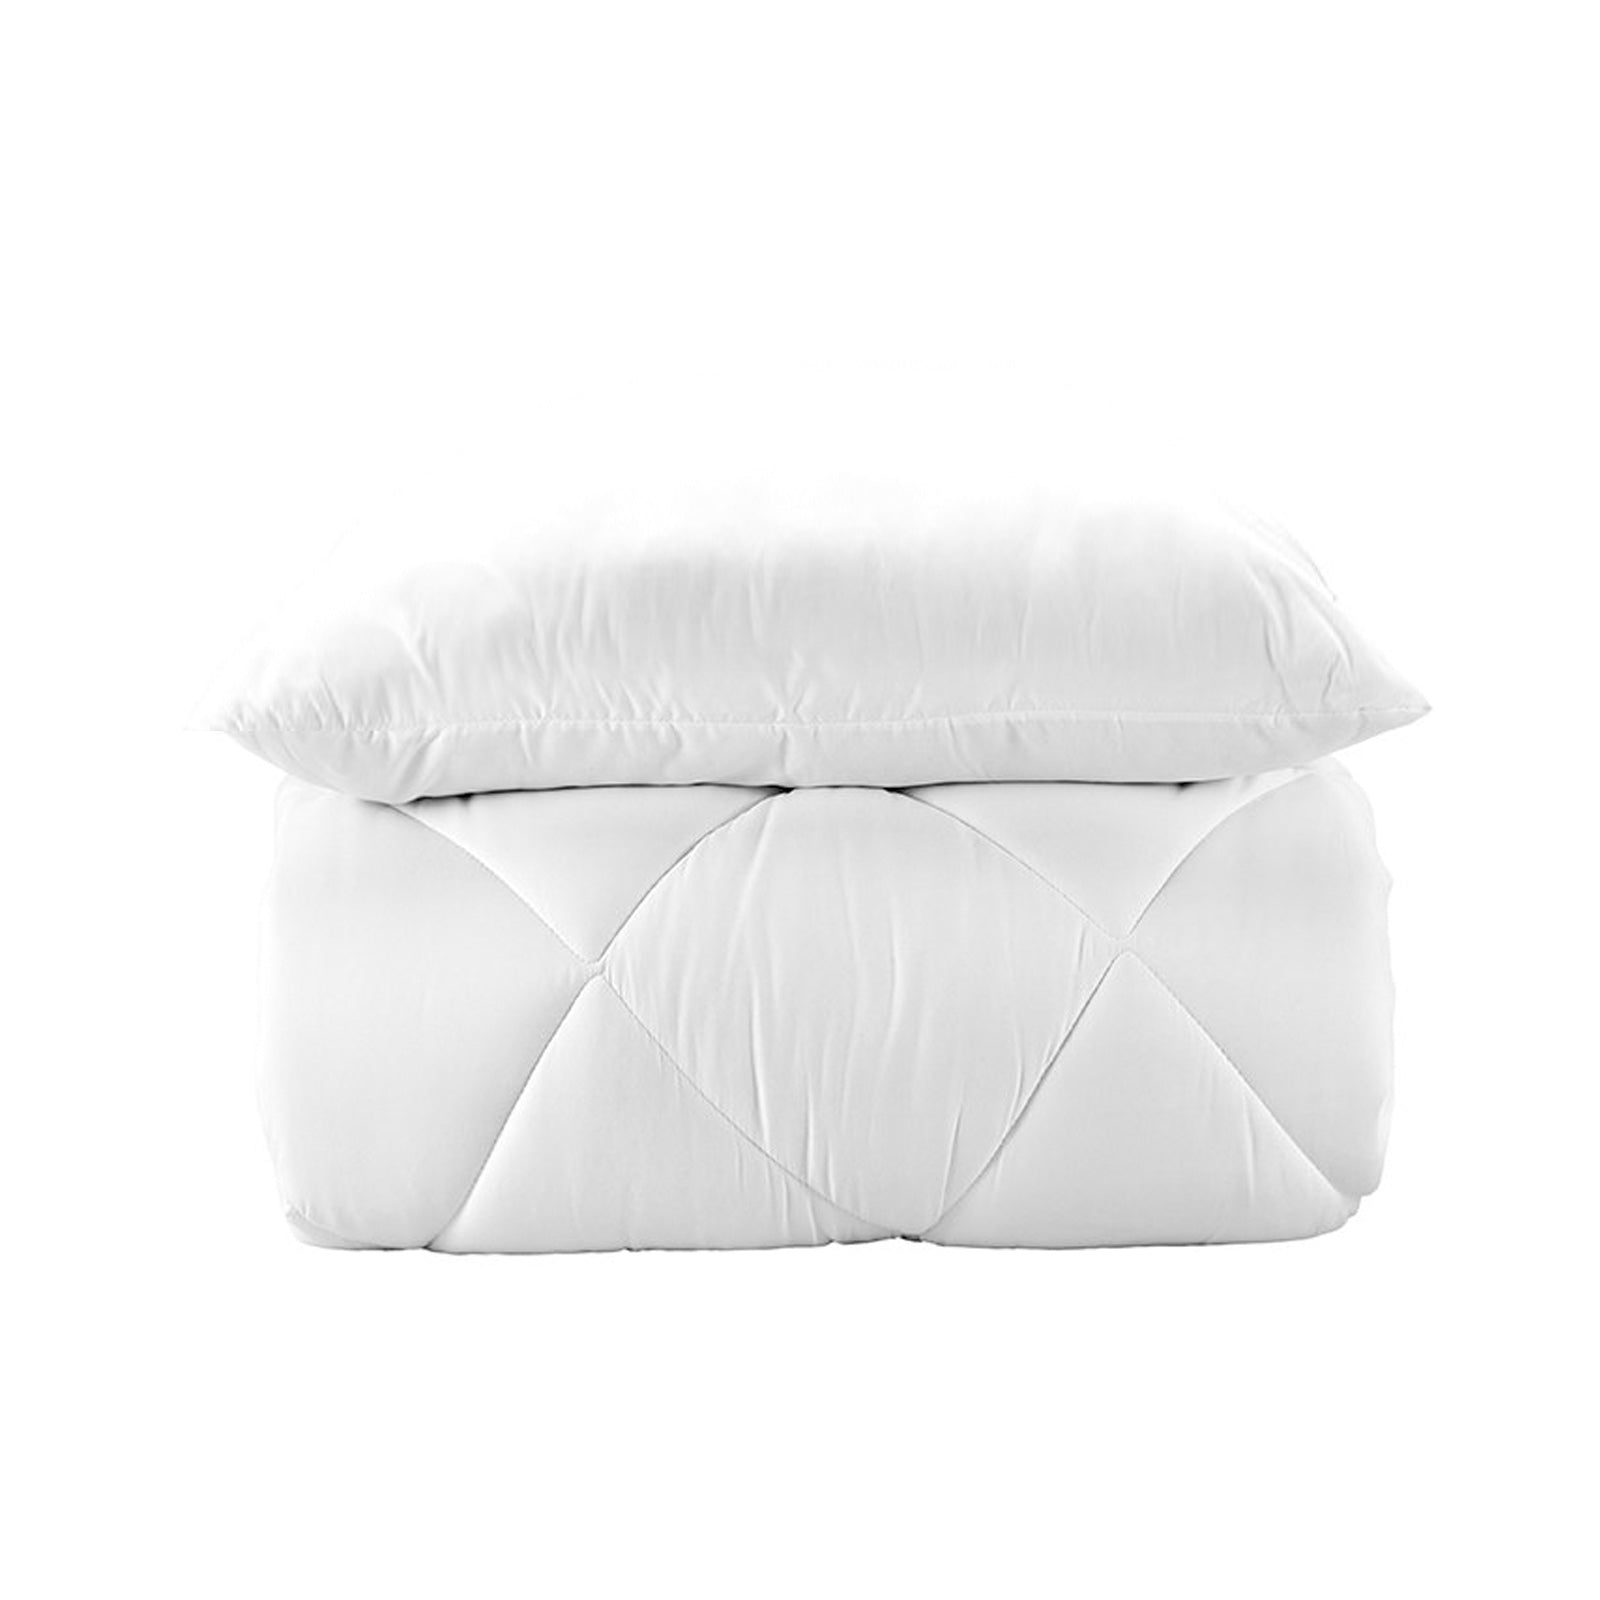 Set of Microfiber single Comforter and 1 Piece cotton  Pillow(MICROFIBER CIFT KS) 200.13.01.0188